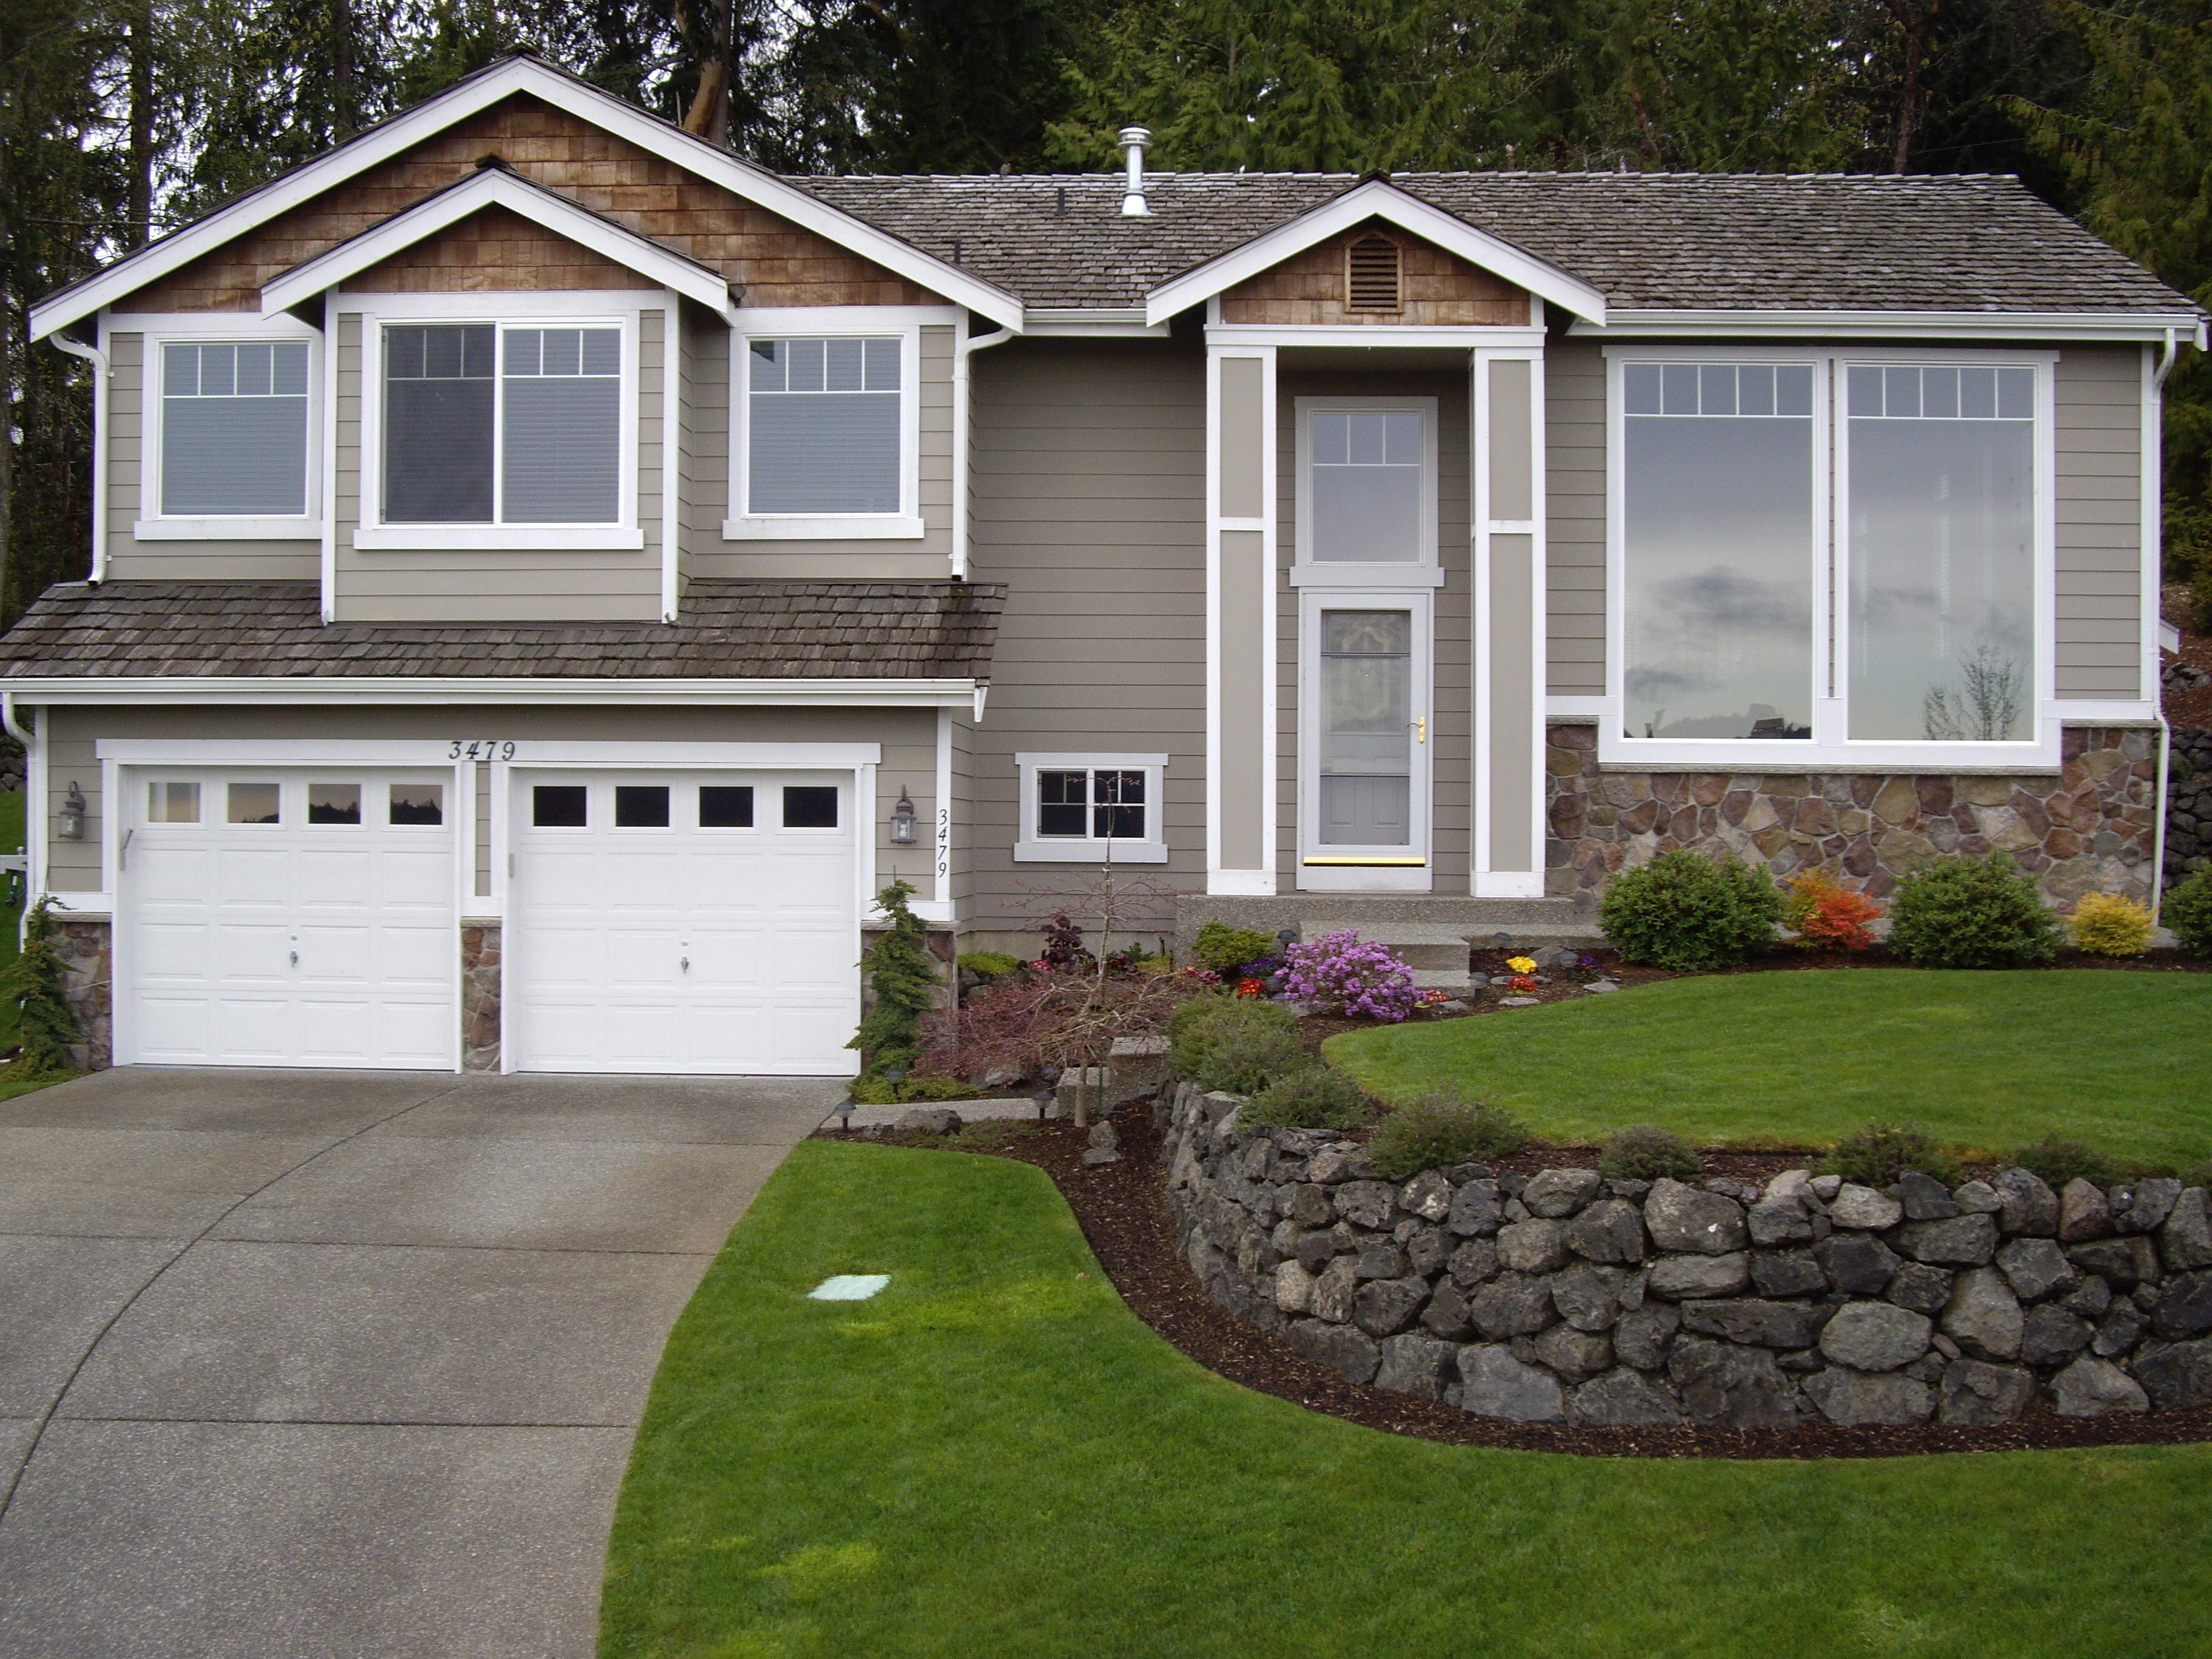 We will change the look of your house. We offer quality house improvement services in Seattle. Get in touch with us today